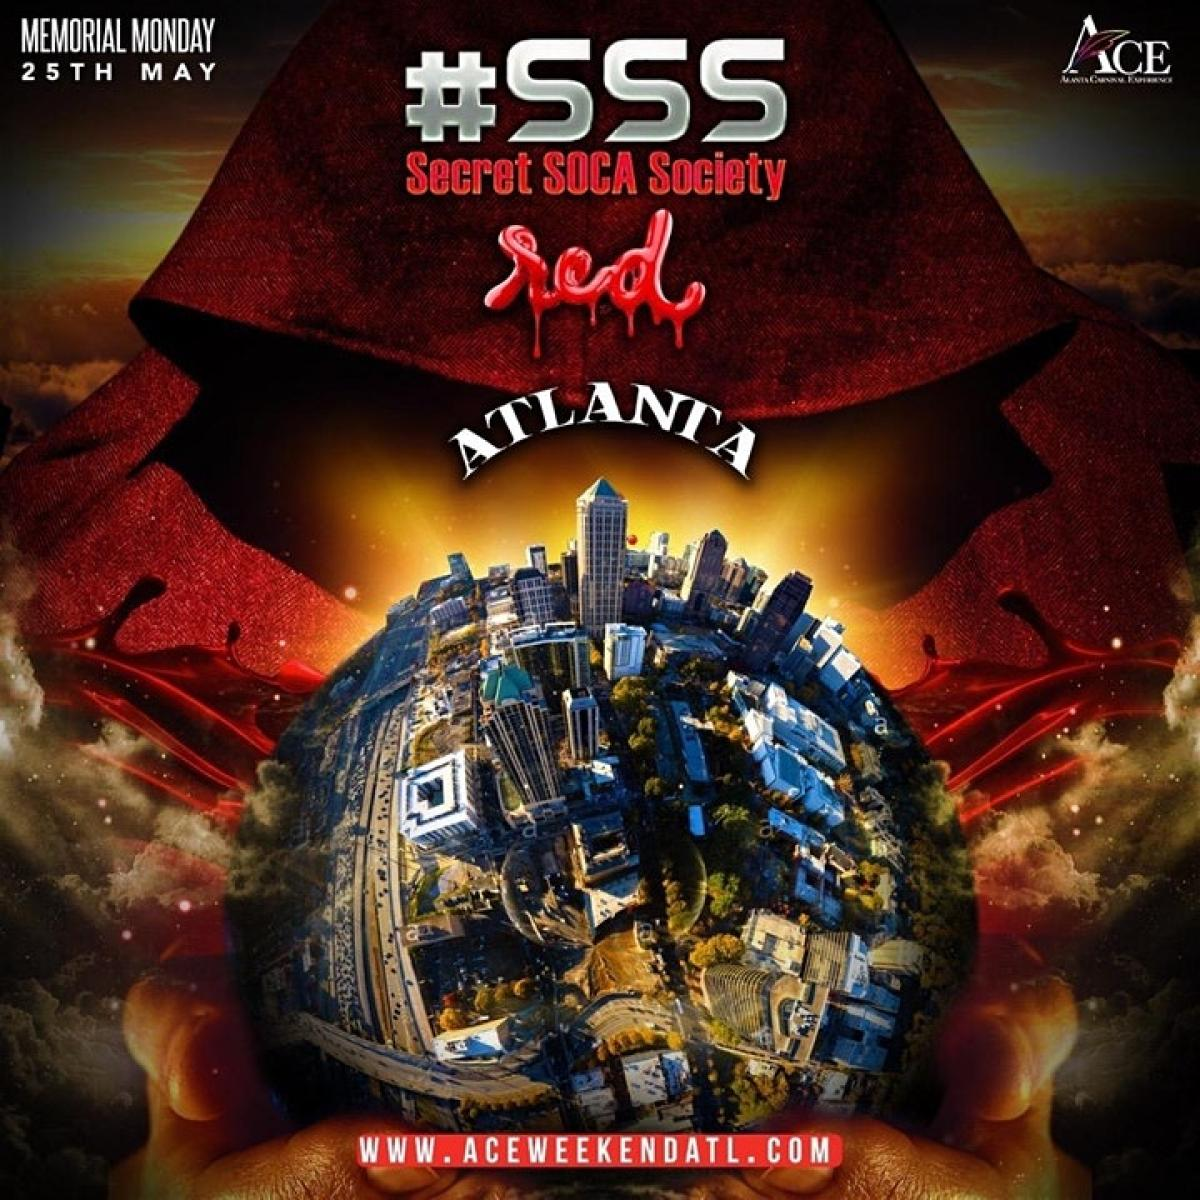 SSS Red ATL flyer or graphic.